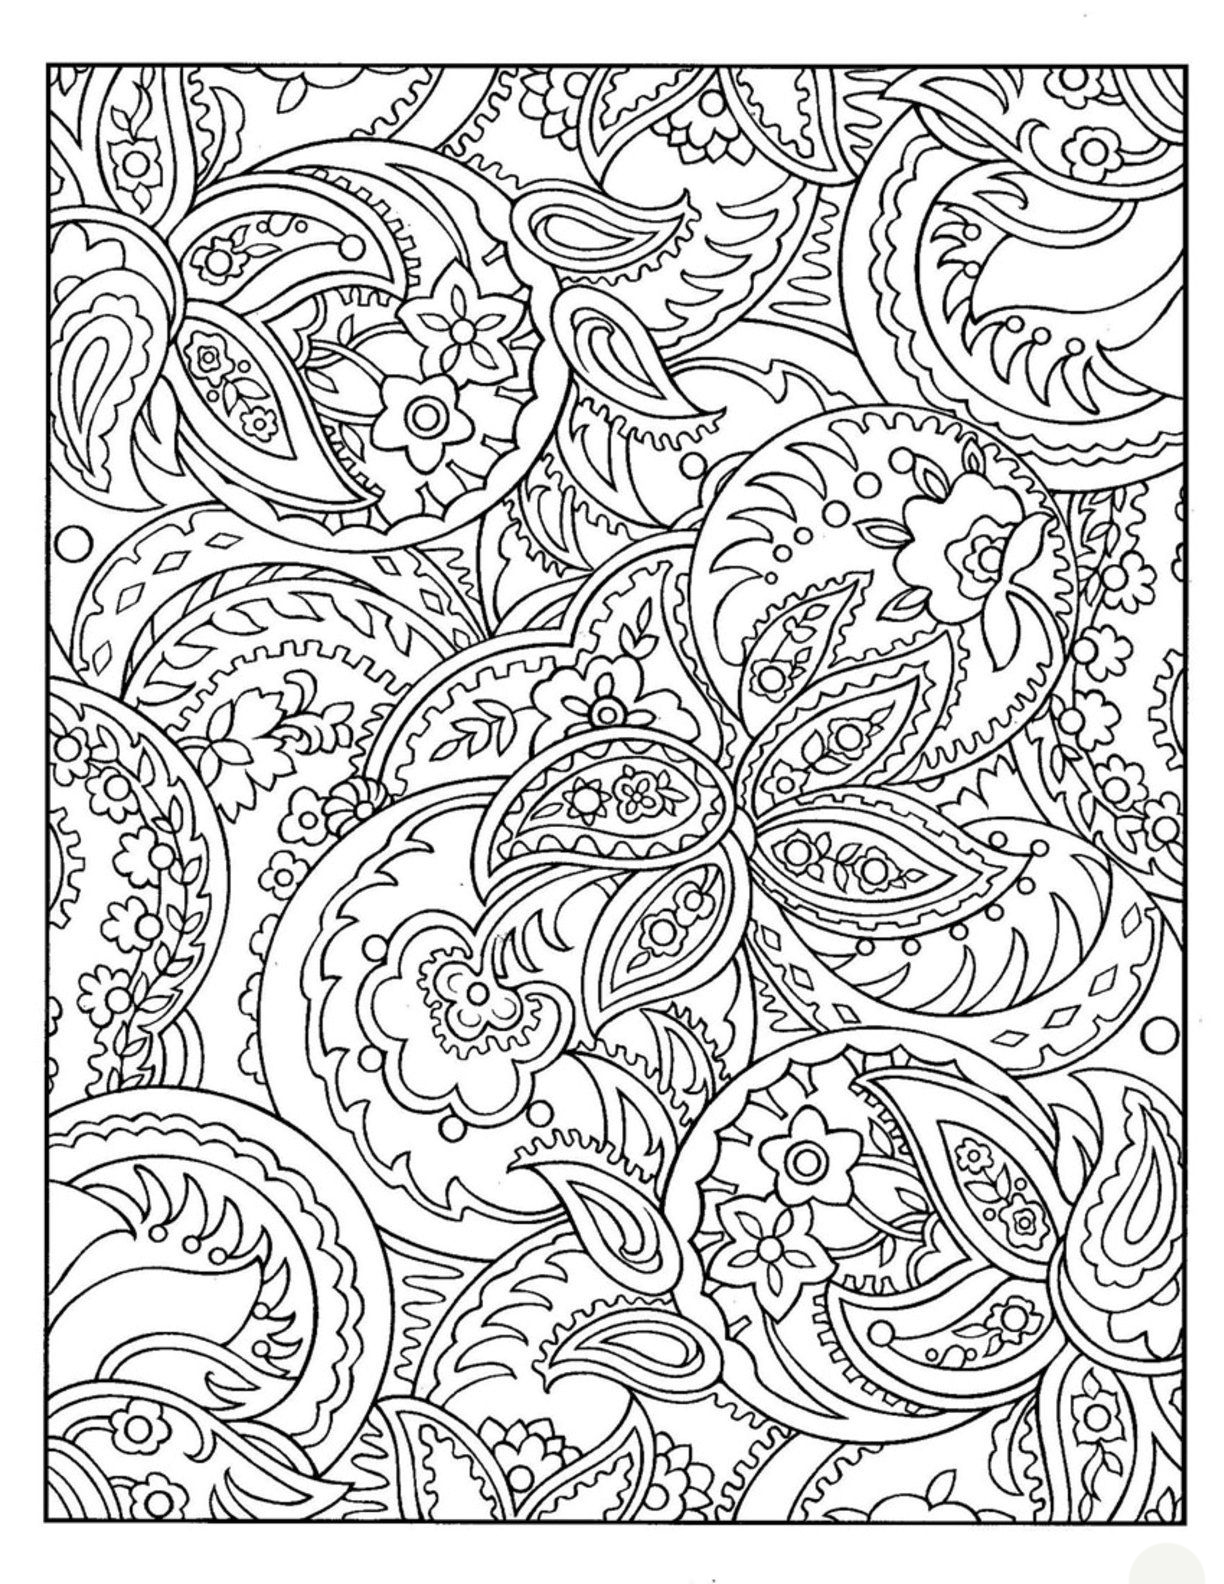 design coloring pages 25 coloring pages including mandalas geometric designs rug design pages coloring